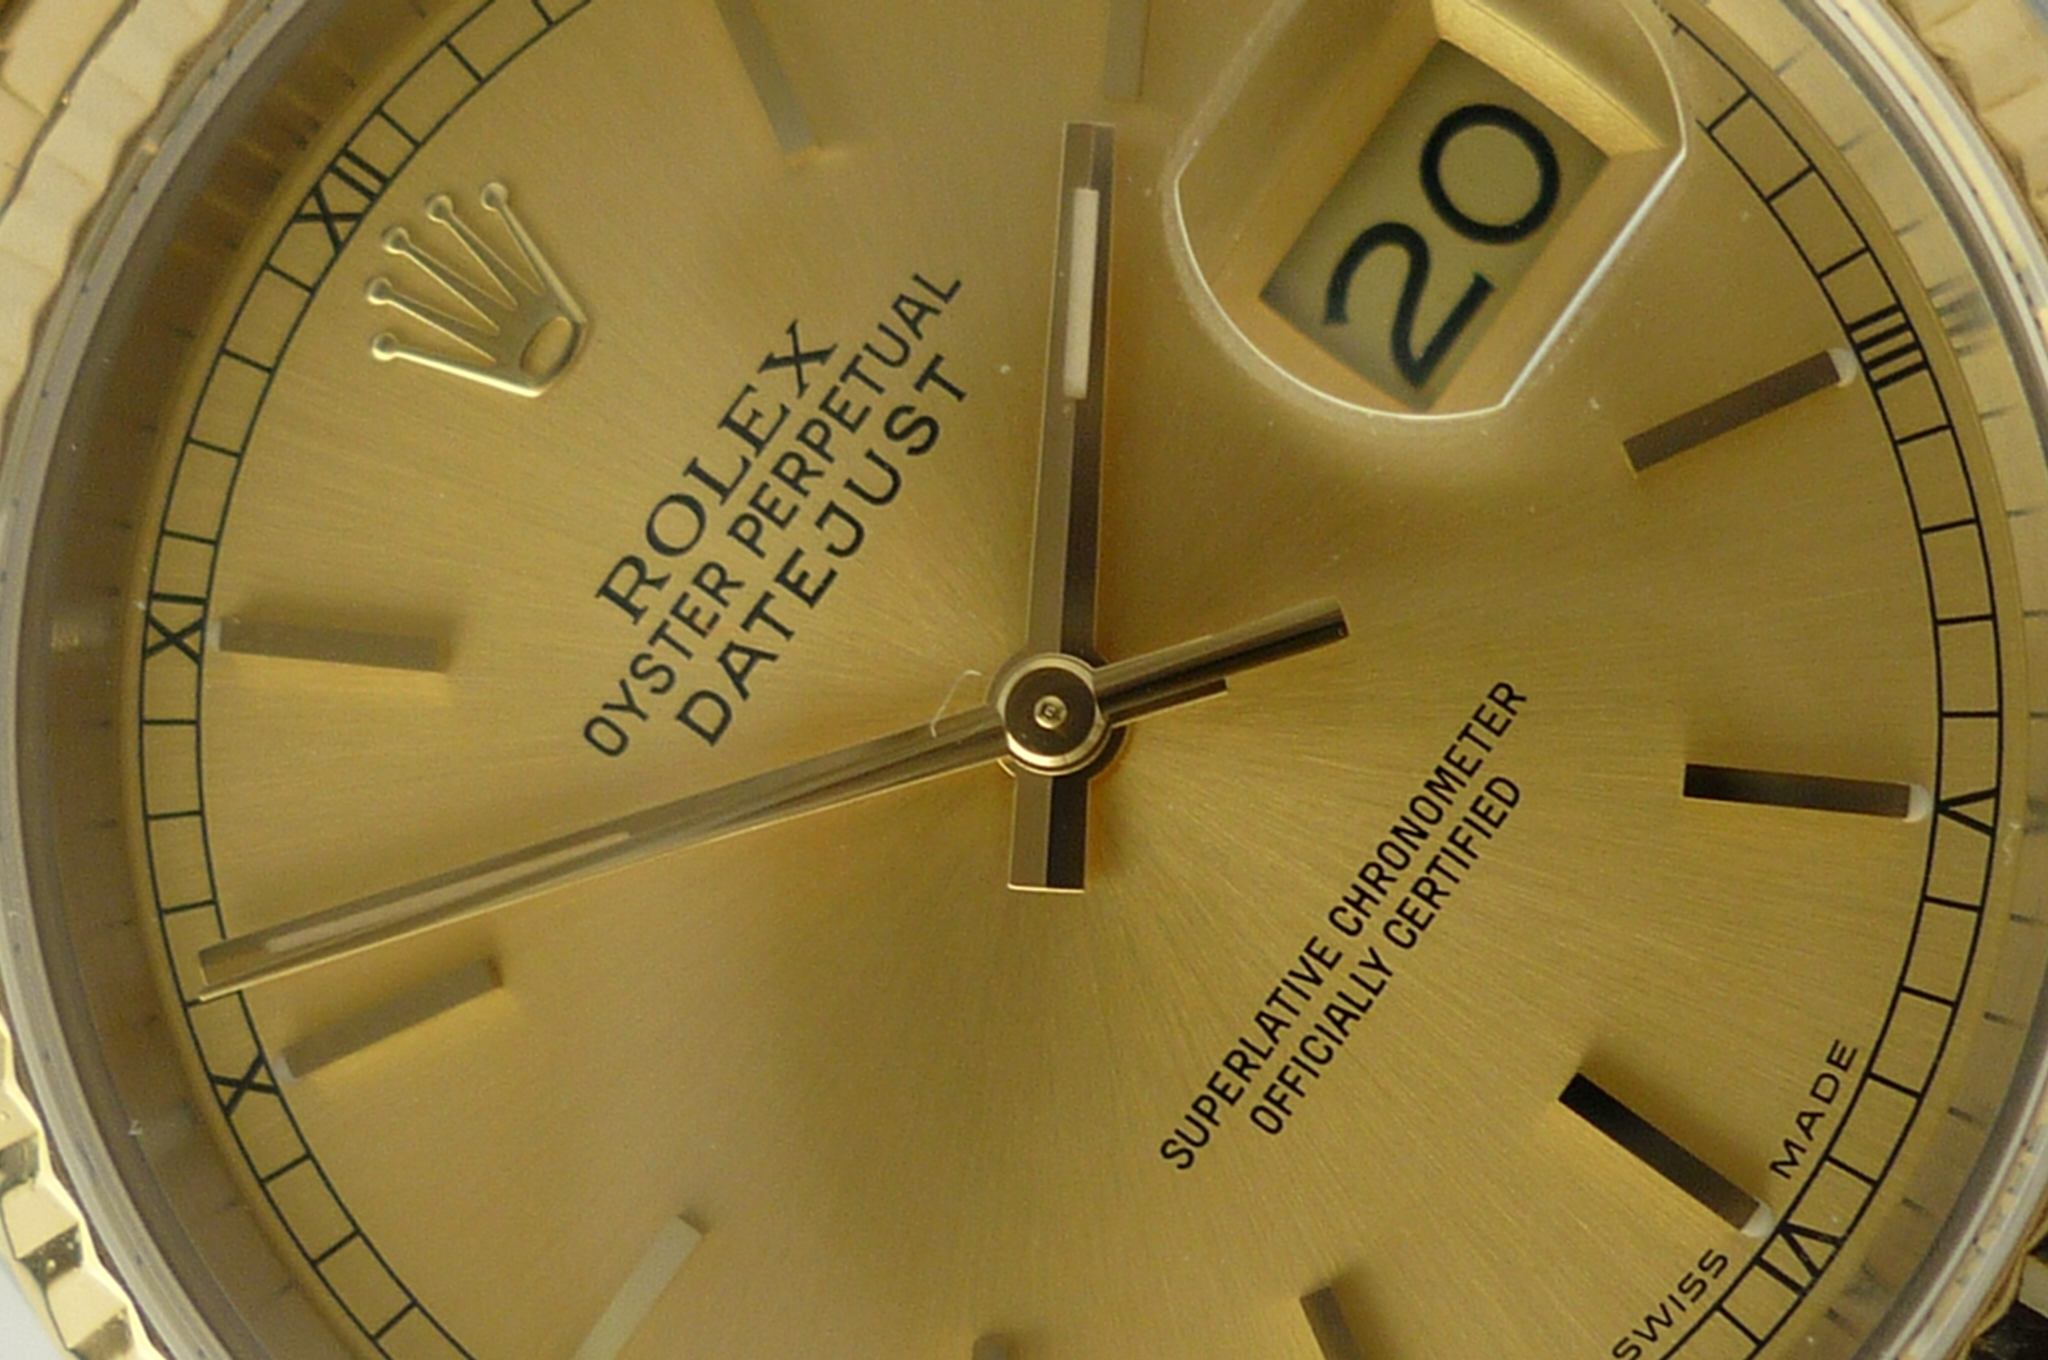 Rolex Oyster Perpetual DateJust watch ref 16233 (1987)